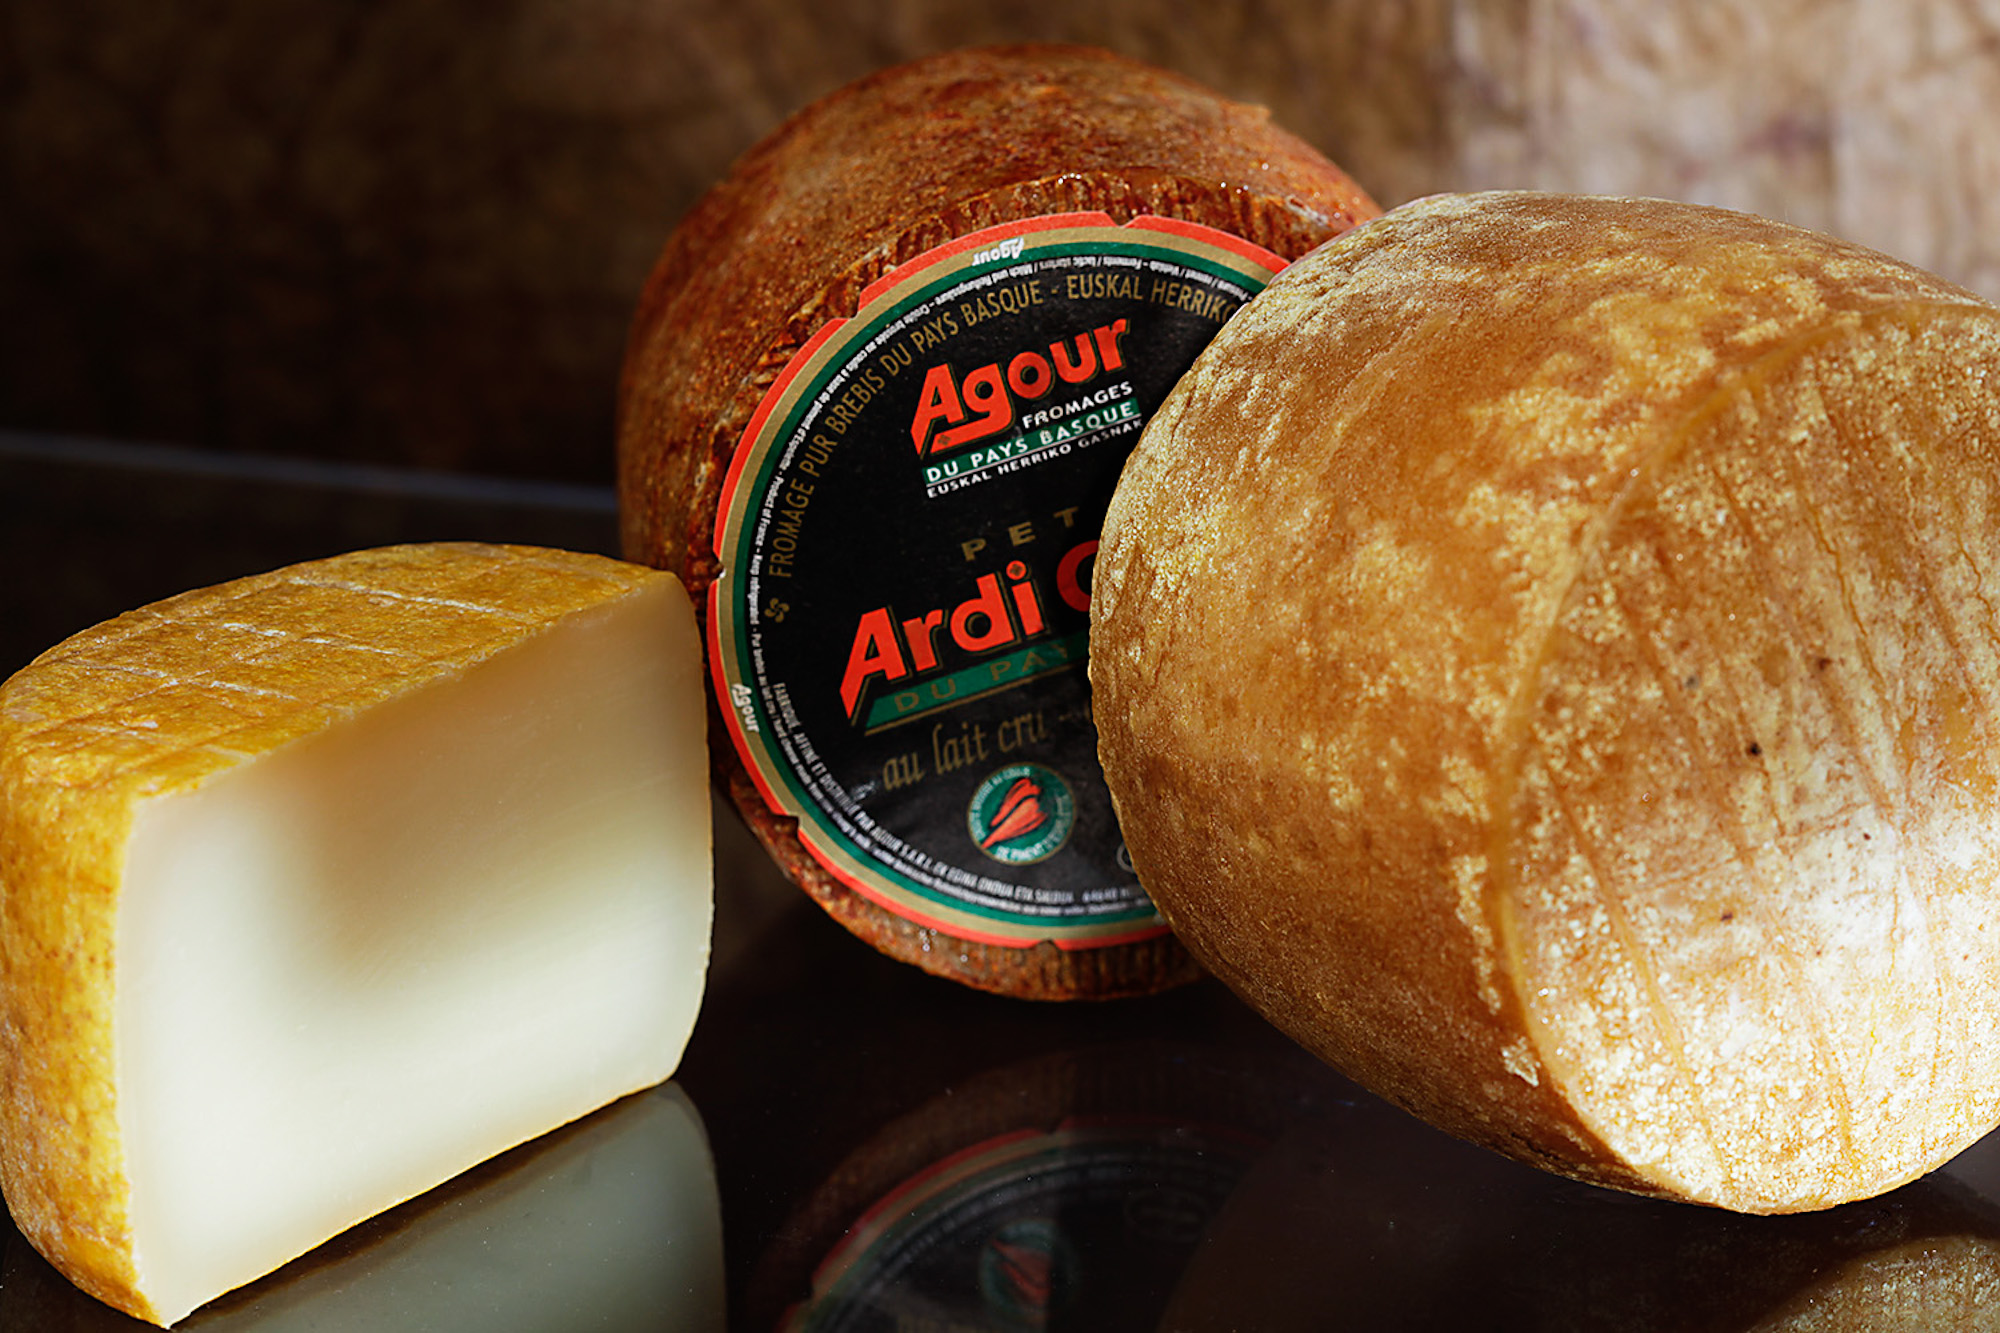 Fromage Agour